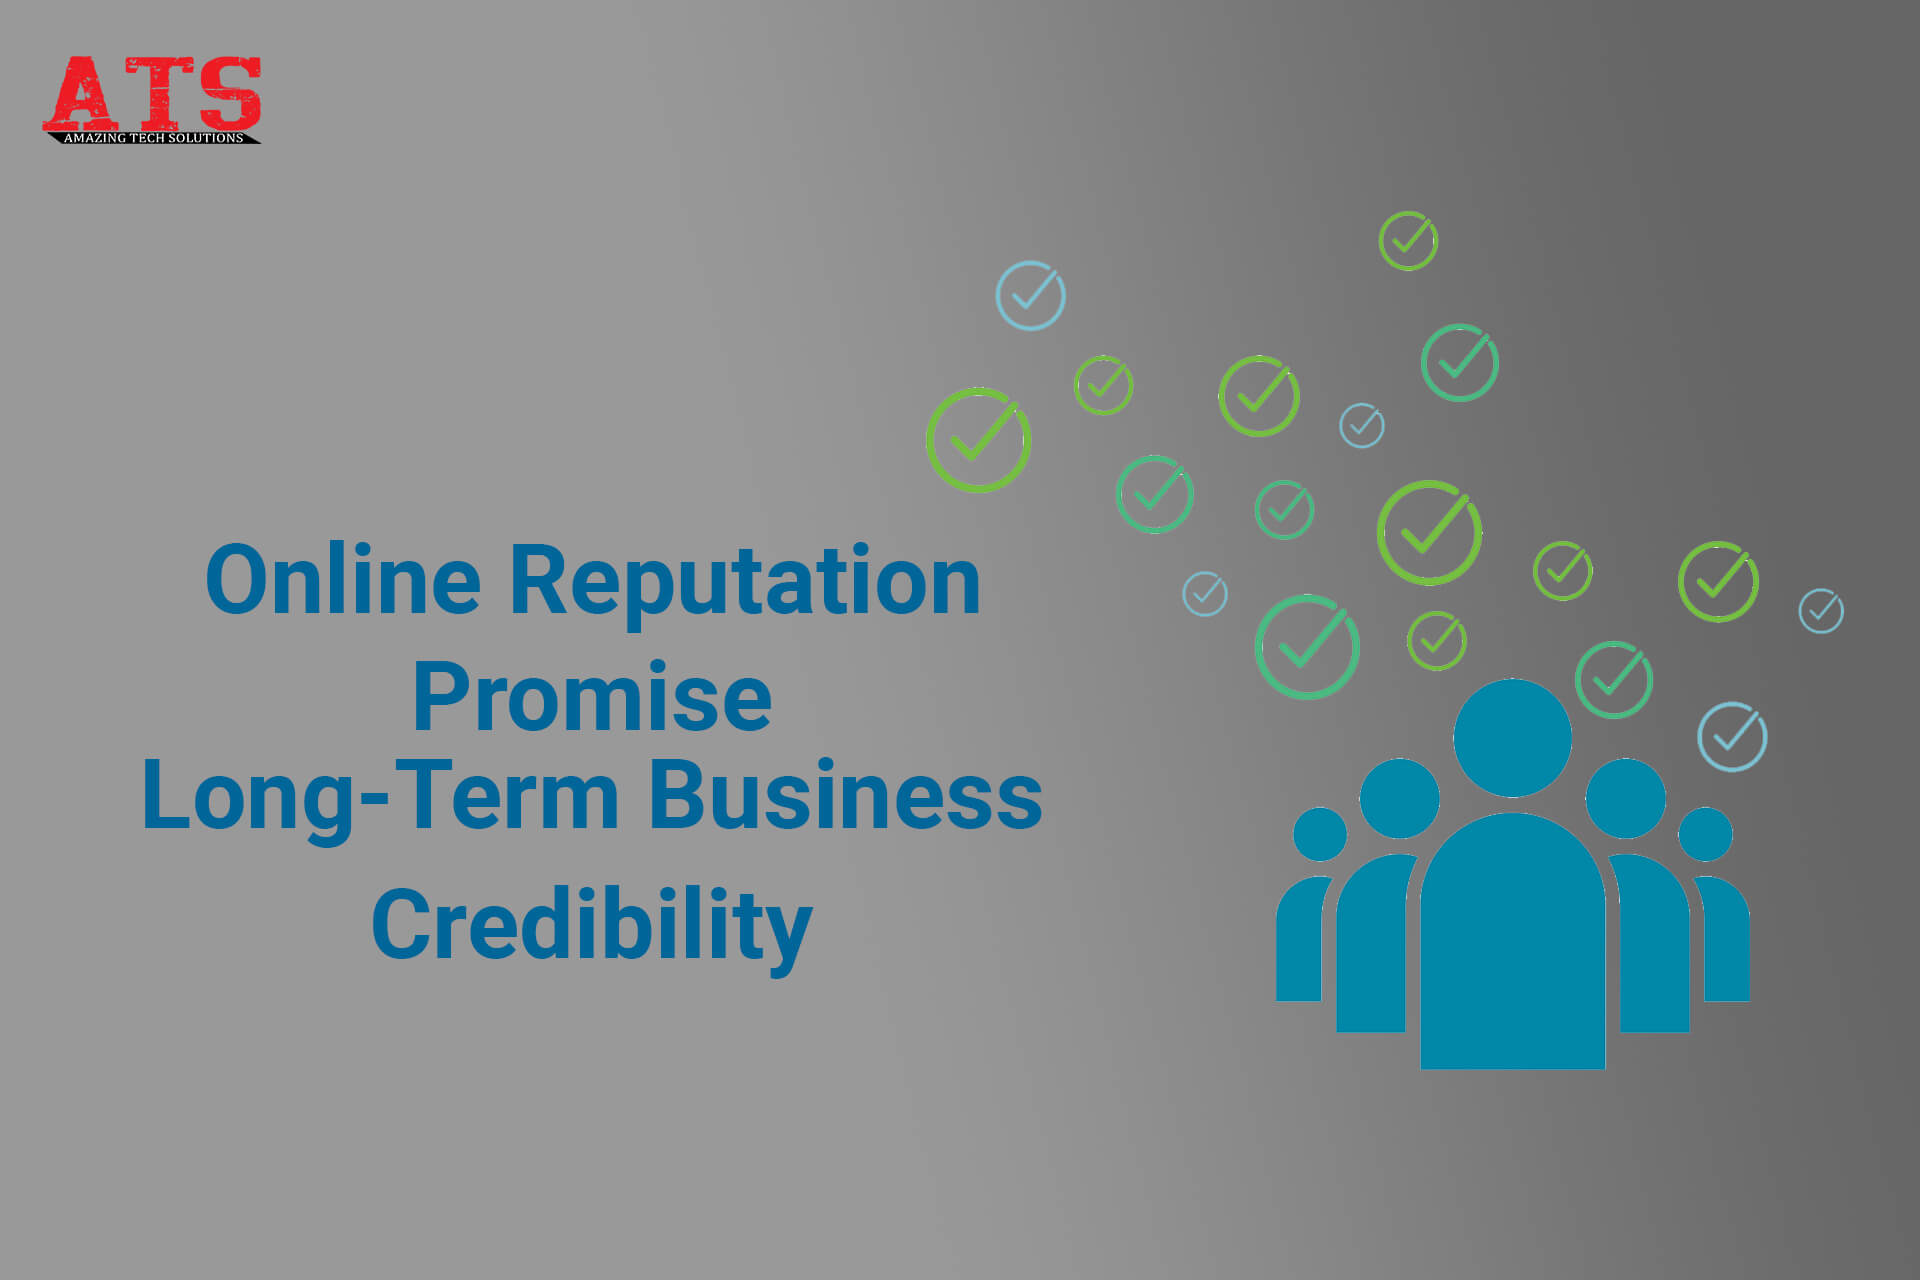 Online Reputation Promise Long-Term Business Credibility